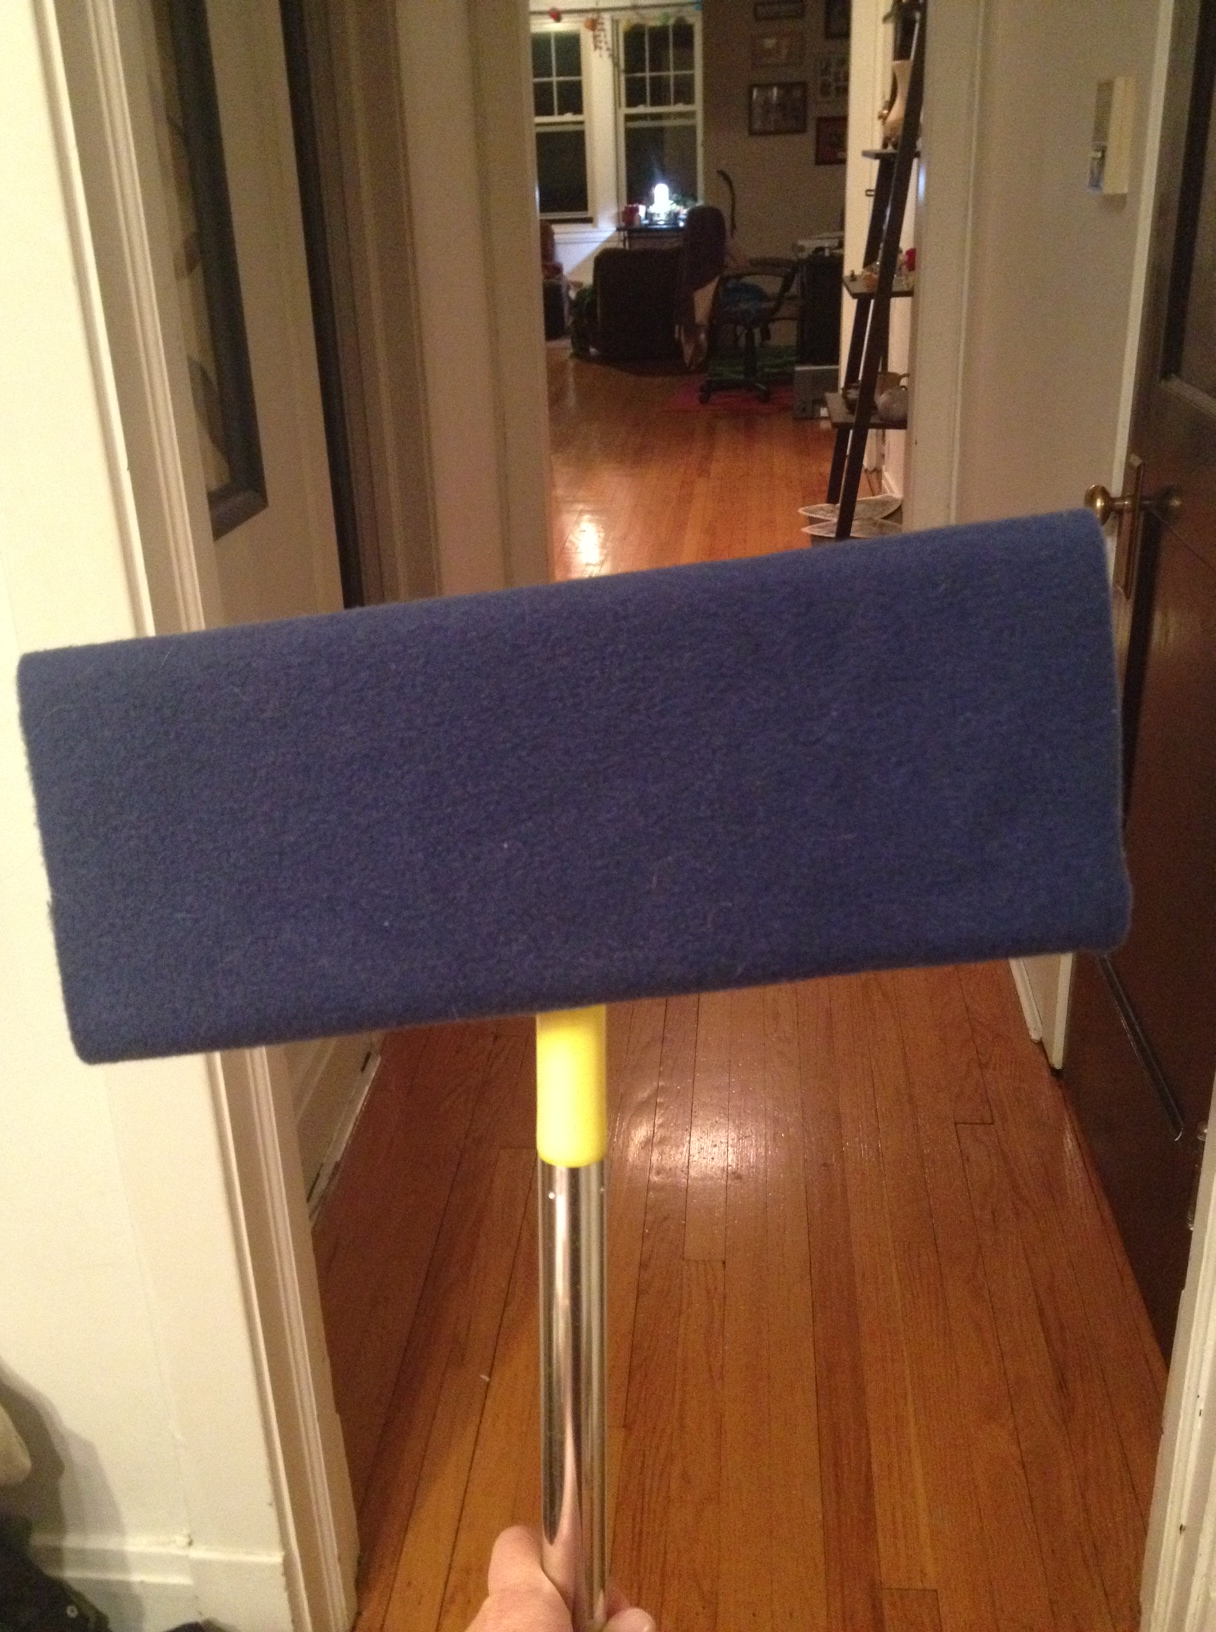 Navy blue cloth on Swiffer